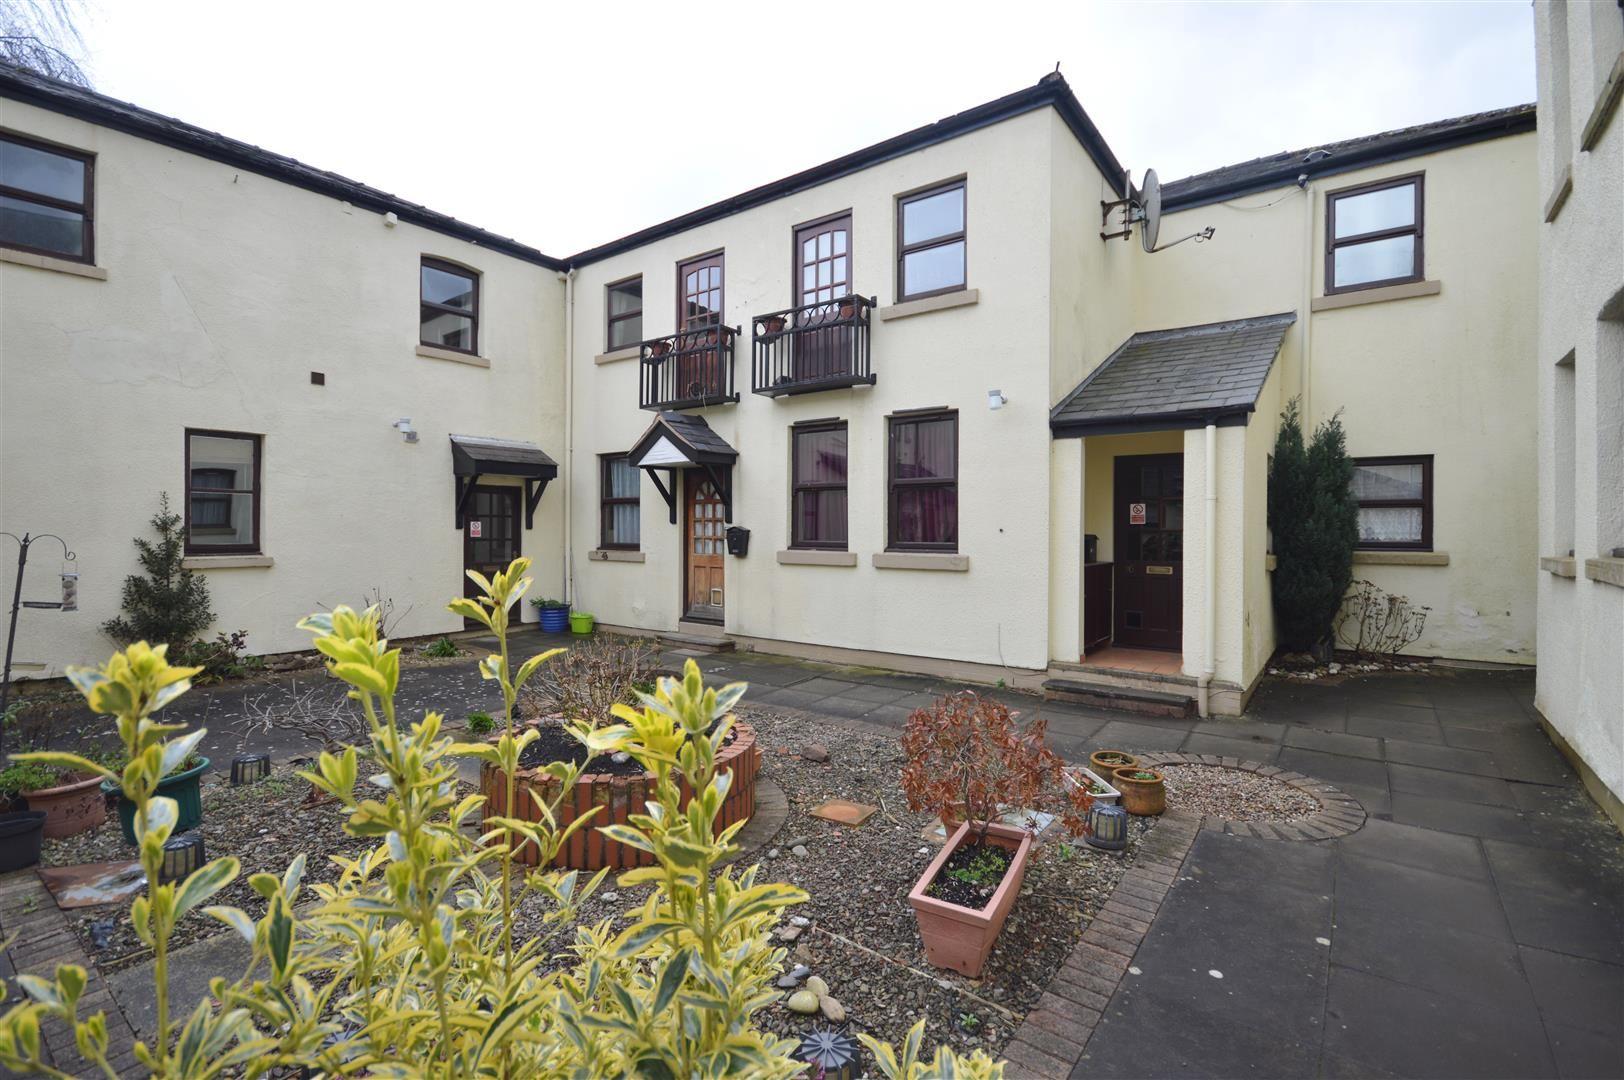 1 bed apartment to rent in Linton, HR7